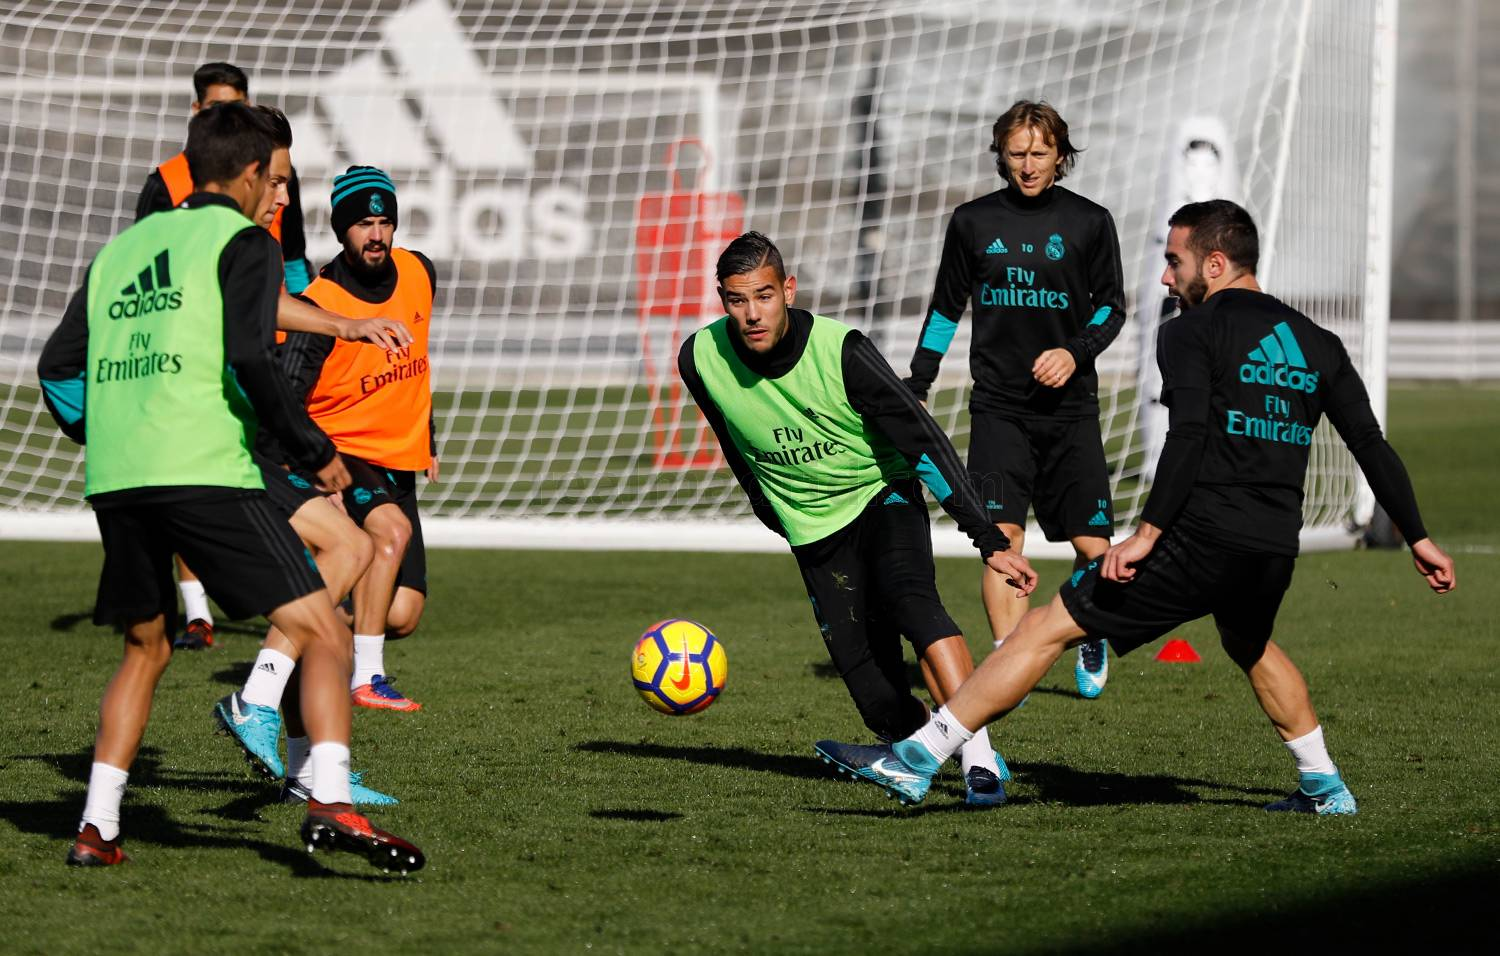 Real Madrid - Entrenamiento del Real Madrid - 15-11-2017